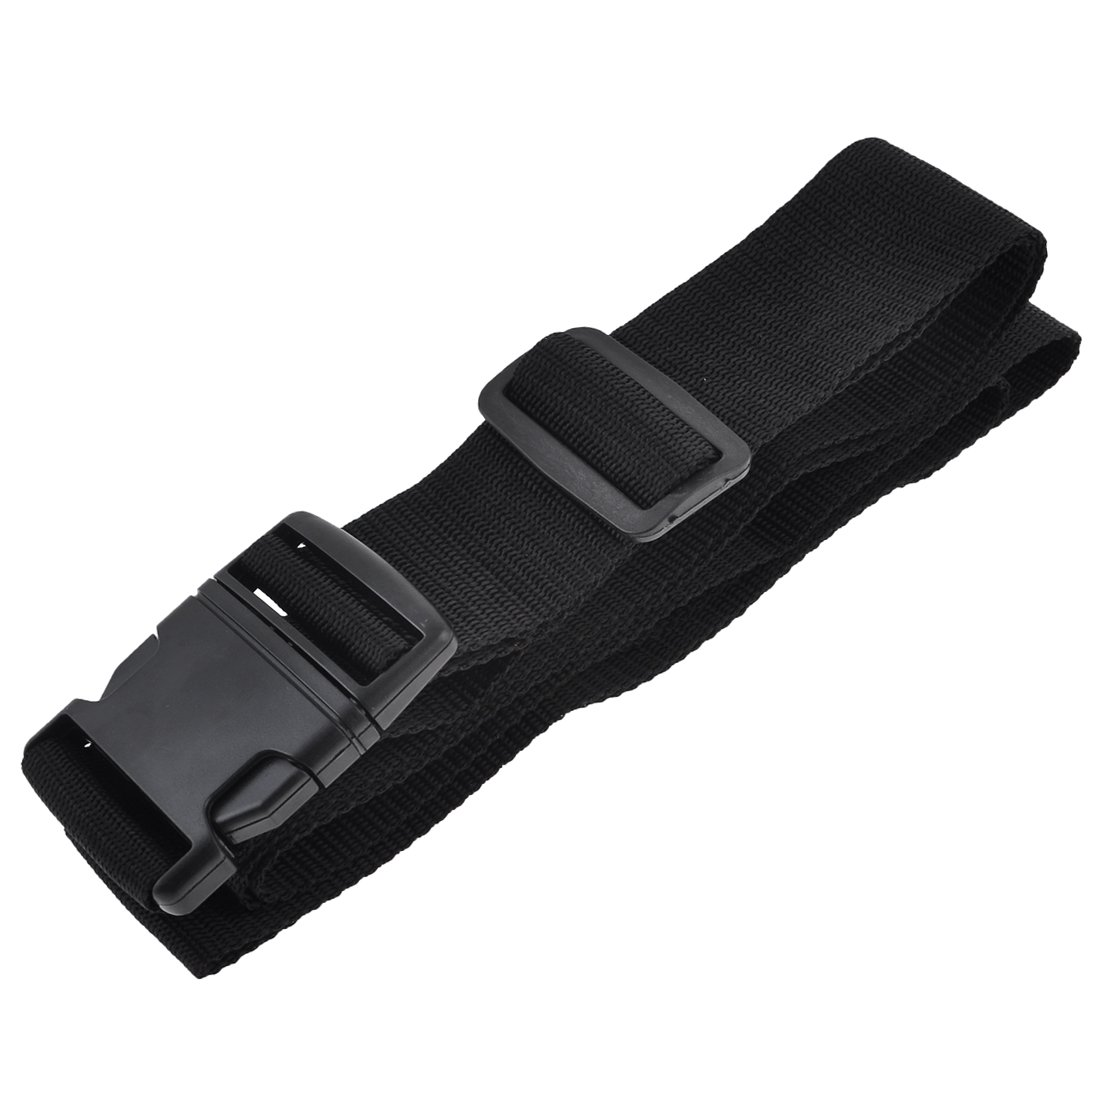 2016 Hot StyleQuick Release Buckle 3 Digits Black Lock Luggage Strap